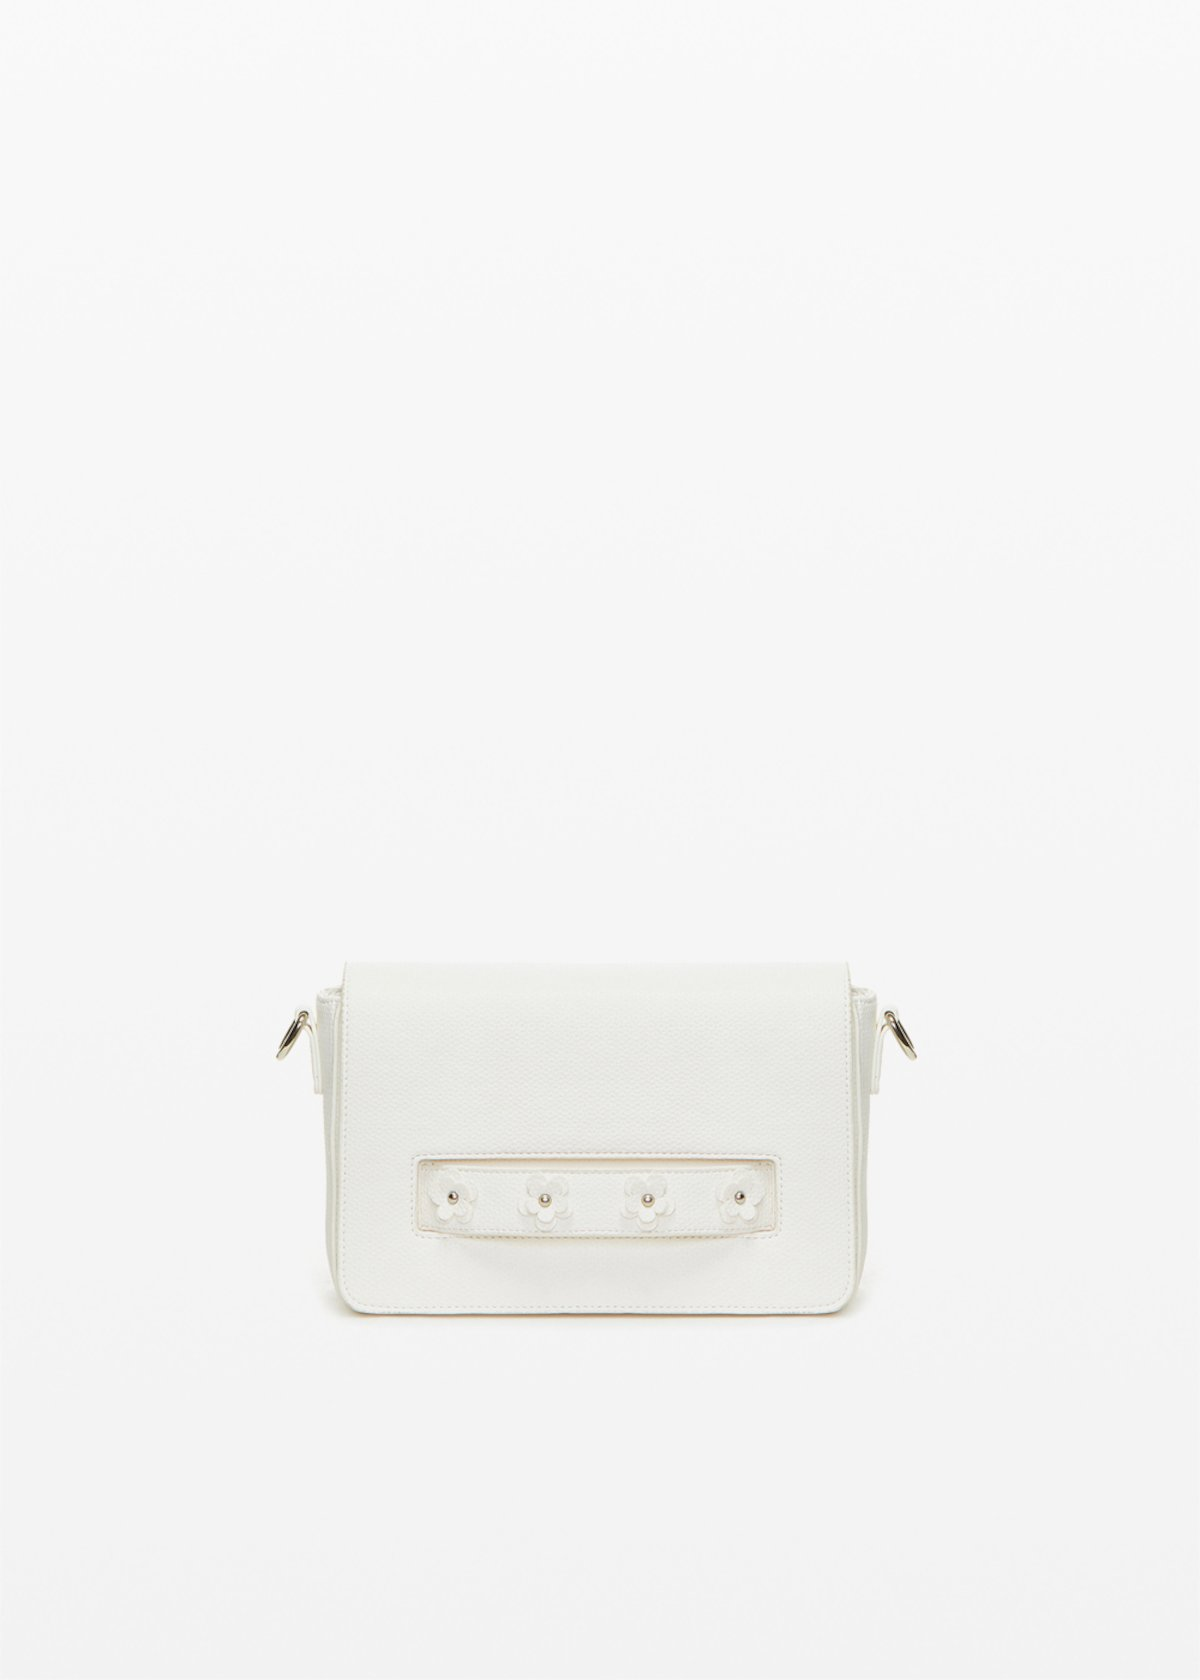 Crossbody bag Bay in ecopelle con dettaglio fiori - White - Donna - Immagine categoria